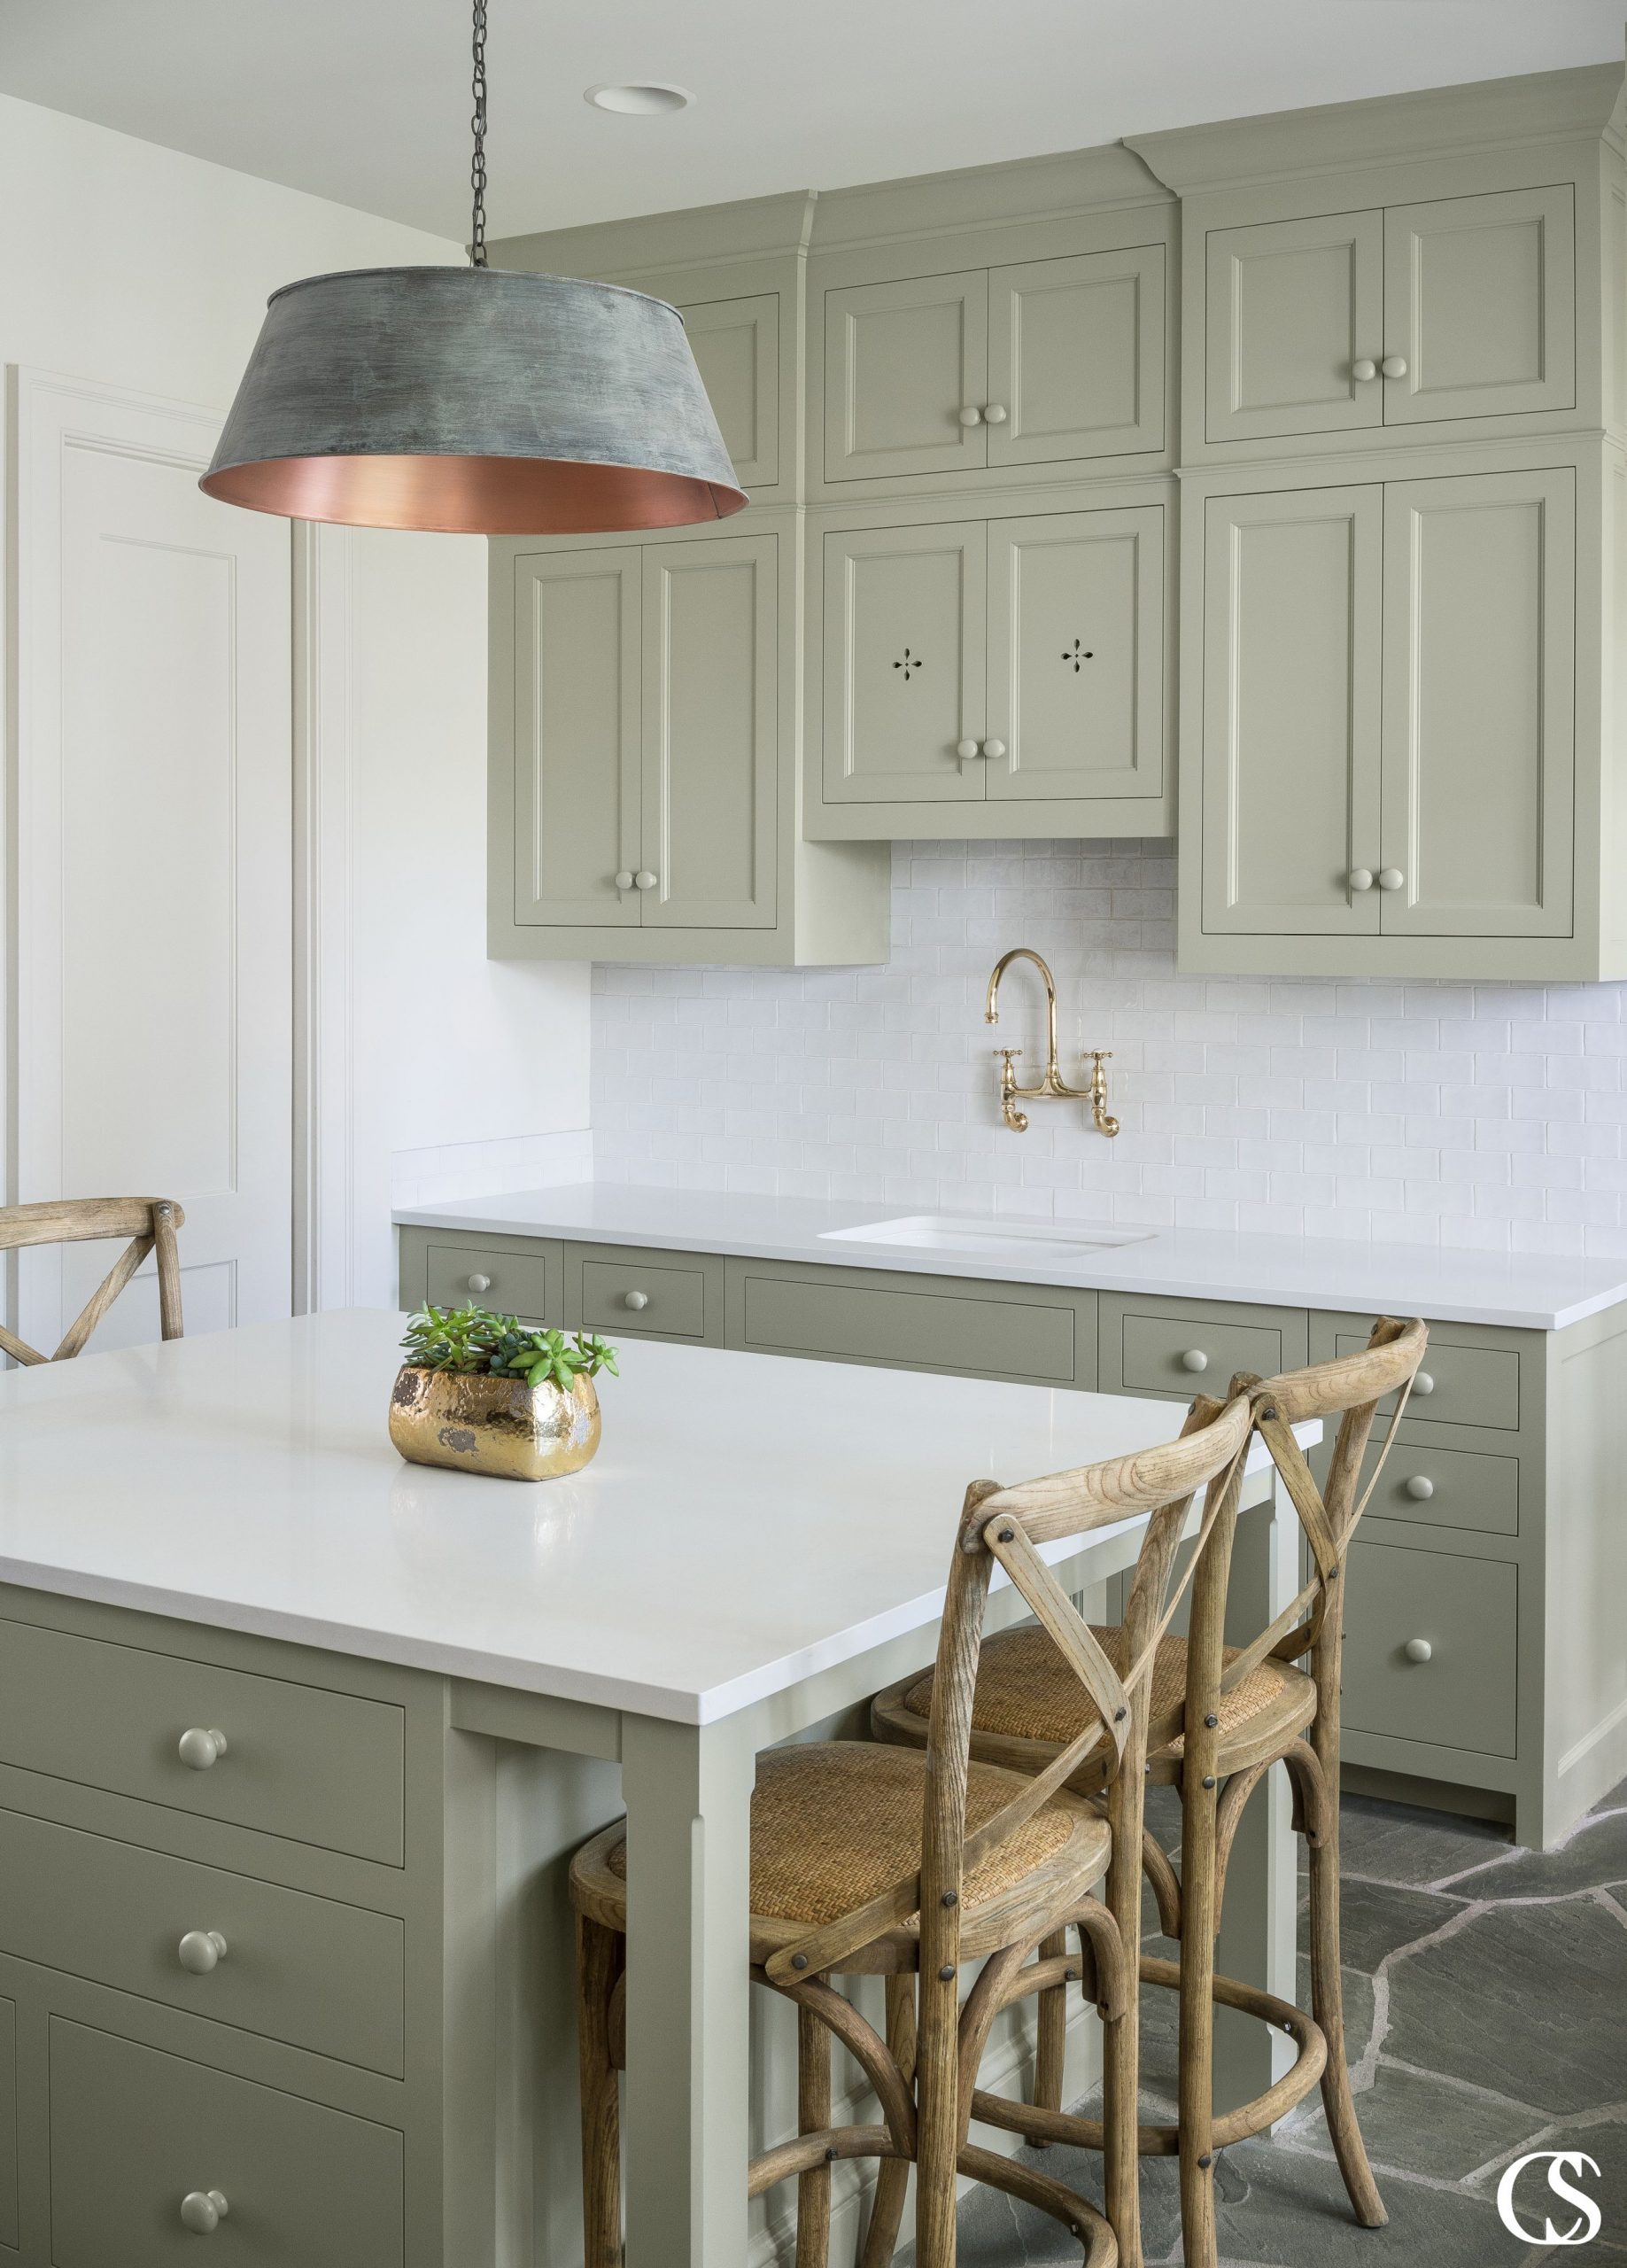 Pastel, muted, even lighter grey-toned greens are good choices for cabinet colors—think sage or mint. They can still make a statement, but will also have longevity in your home. This is one of our favorite green paints on these unique custom cabinets.